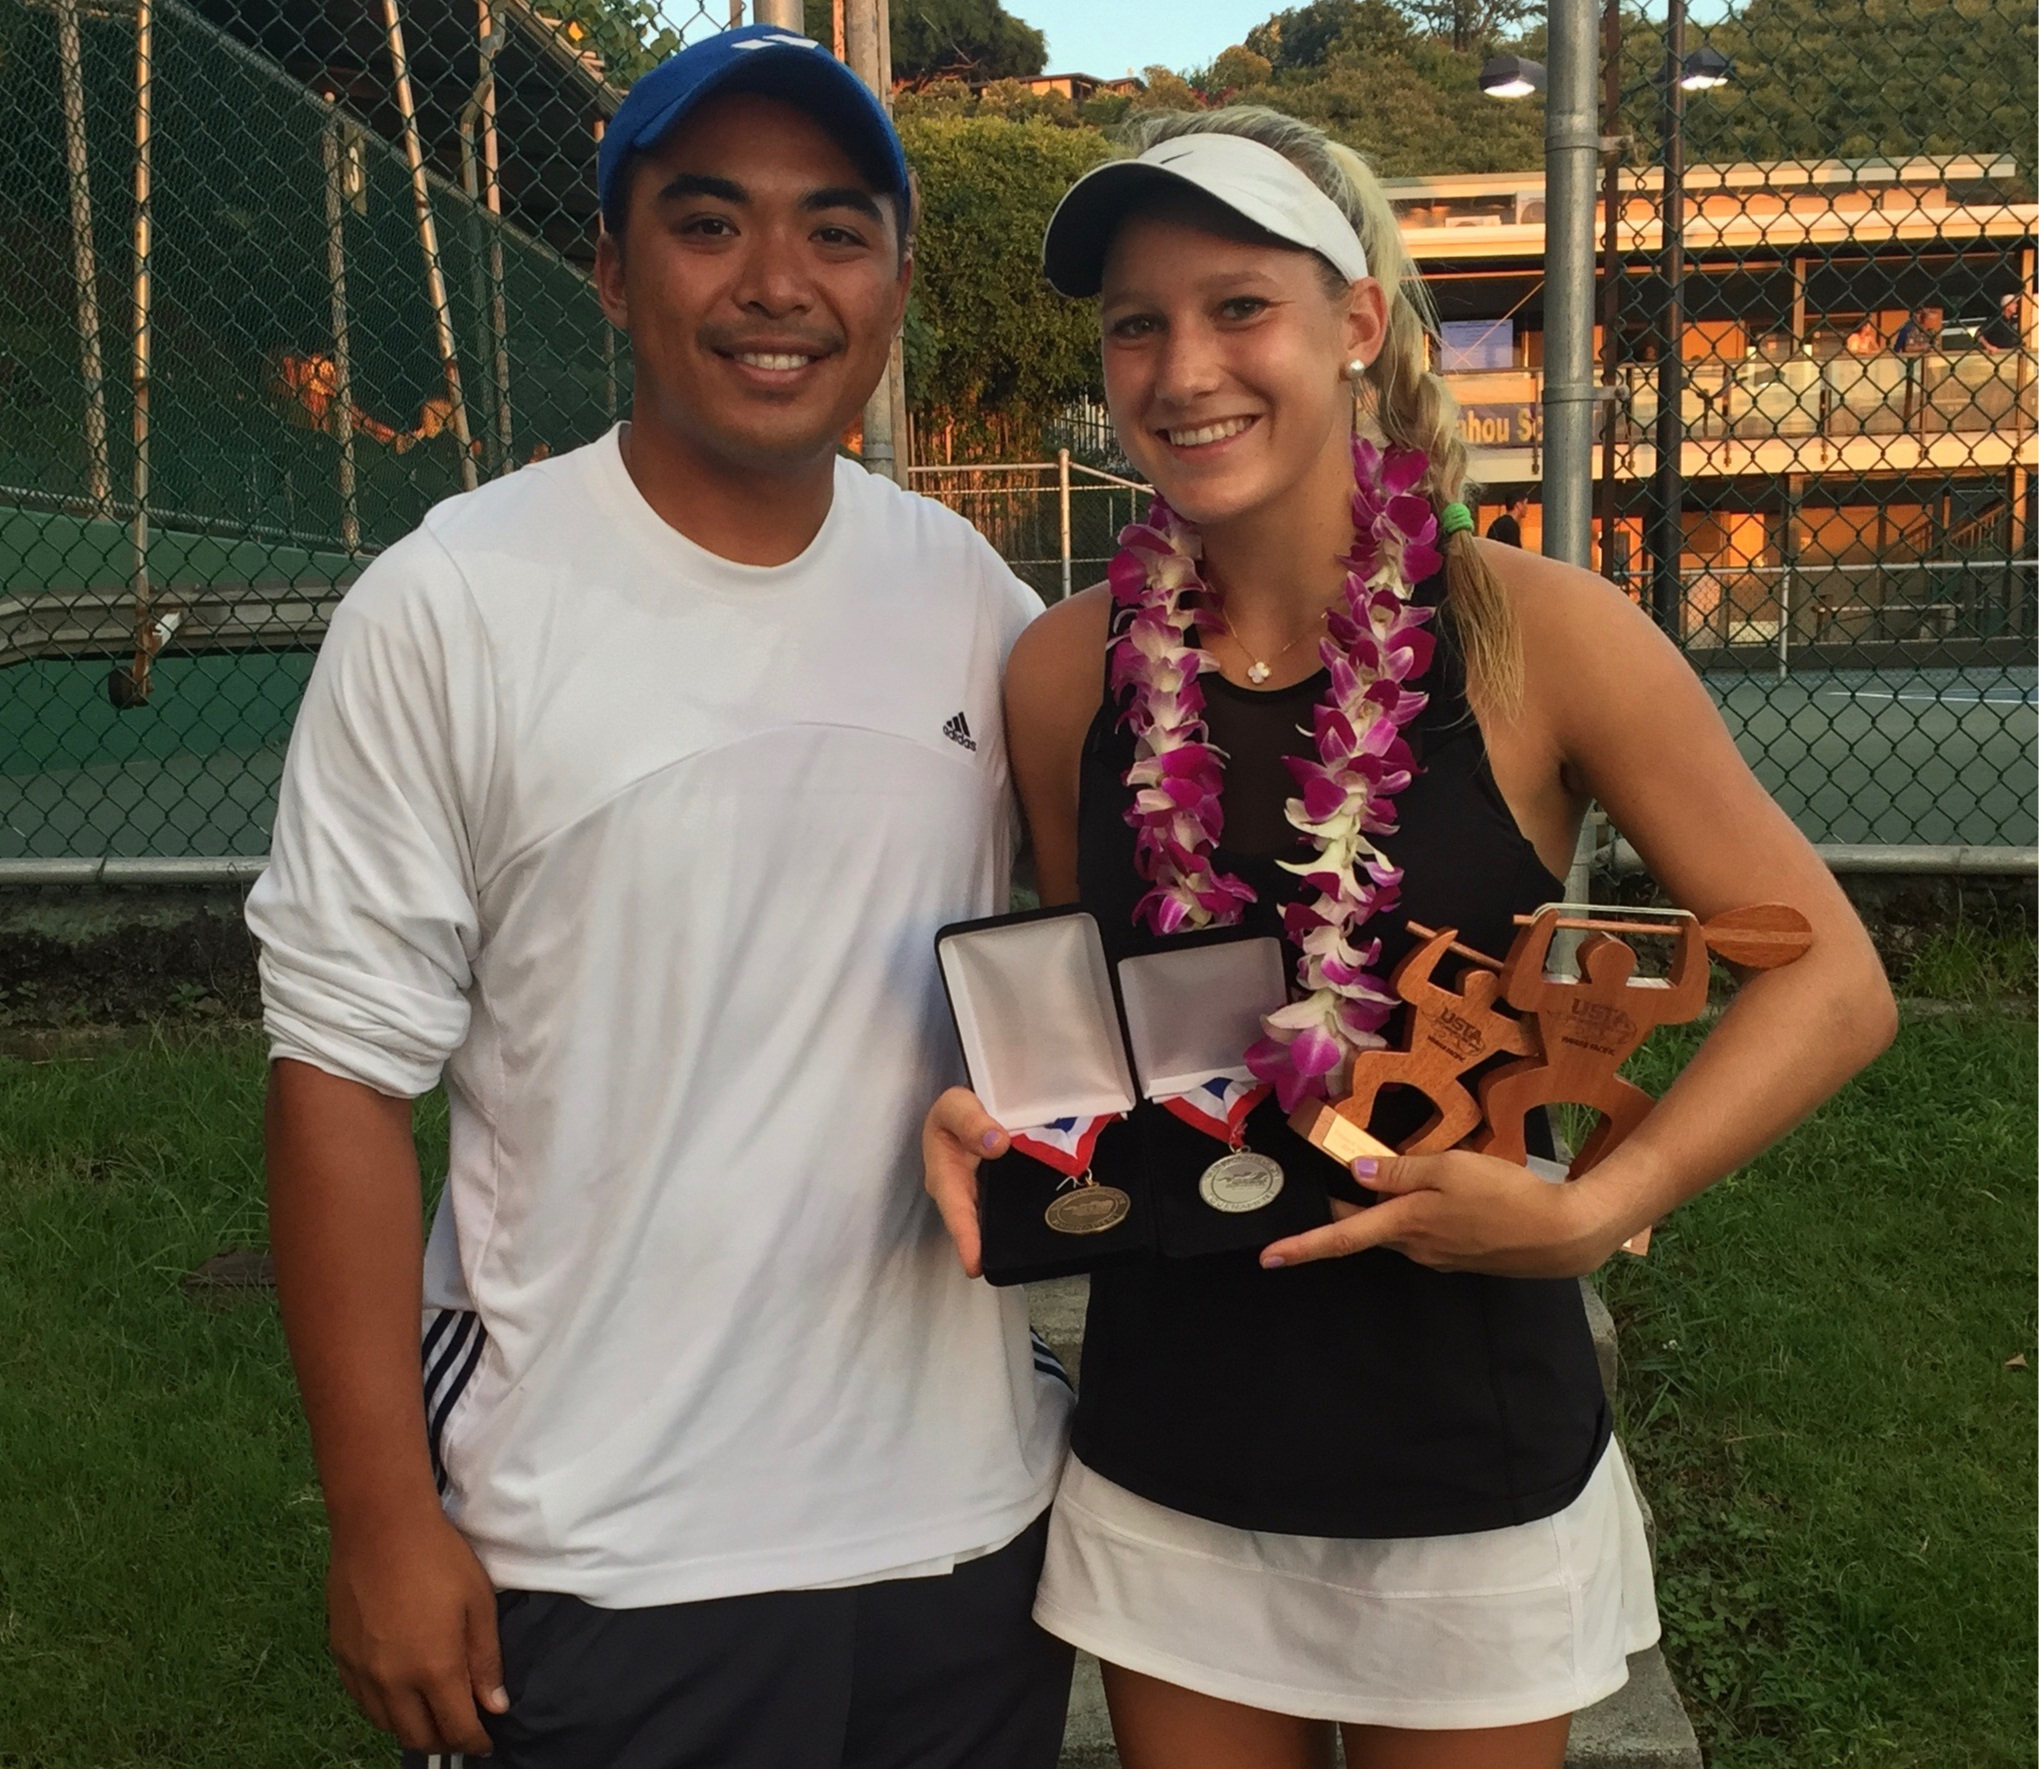 harvard university - Lexi Milunovich (New Cannan, Connecticut)5-Star Recruit - #34 on TennisRecruitingUSTA National Open - Singles 3rd PlaceUSTA National Open - Doubles Champion